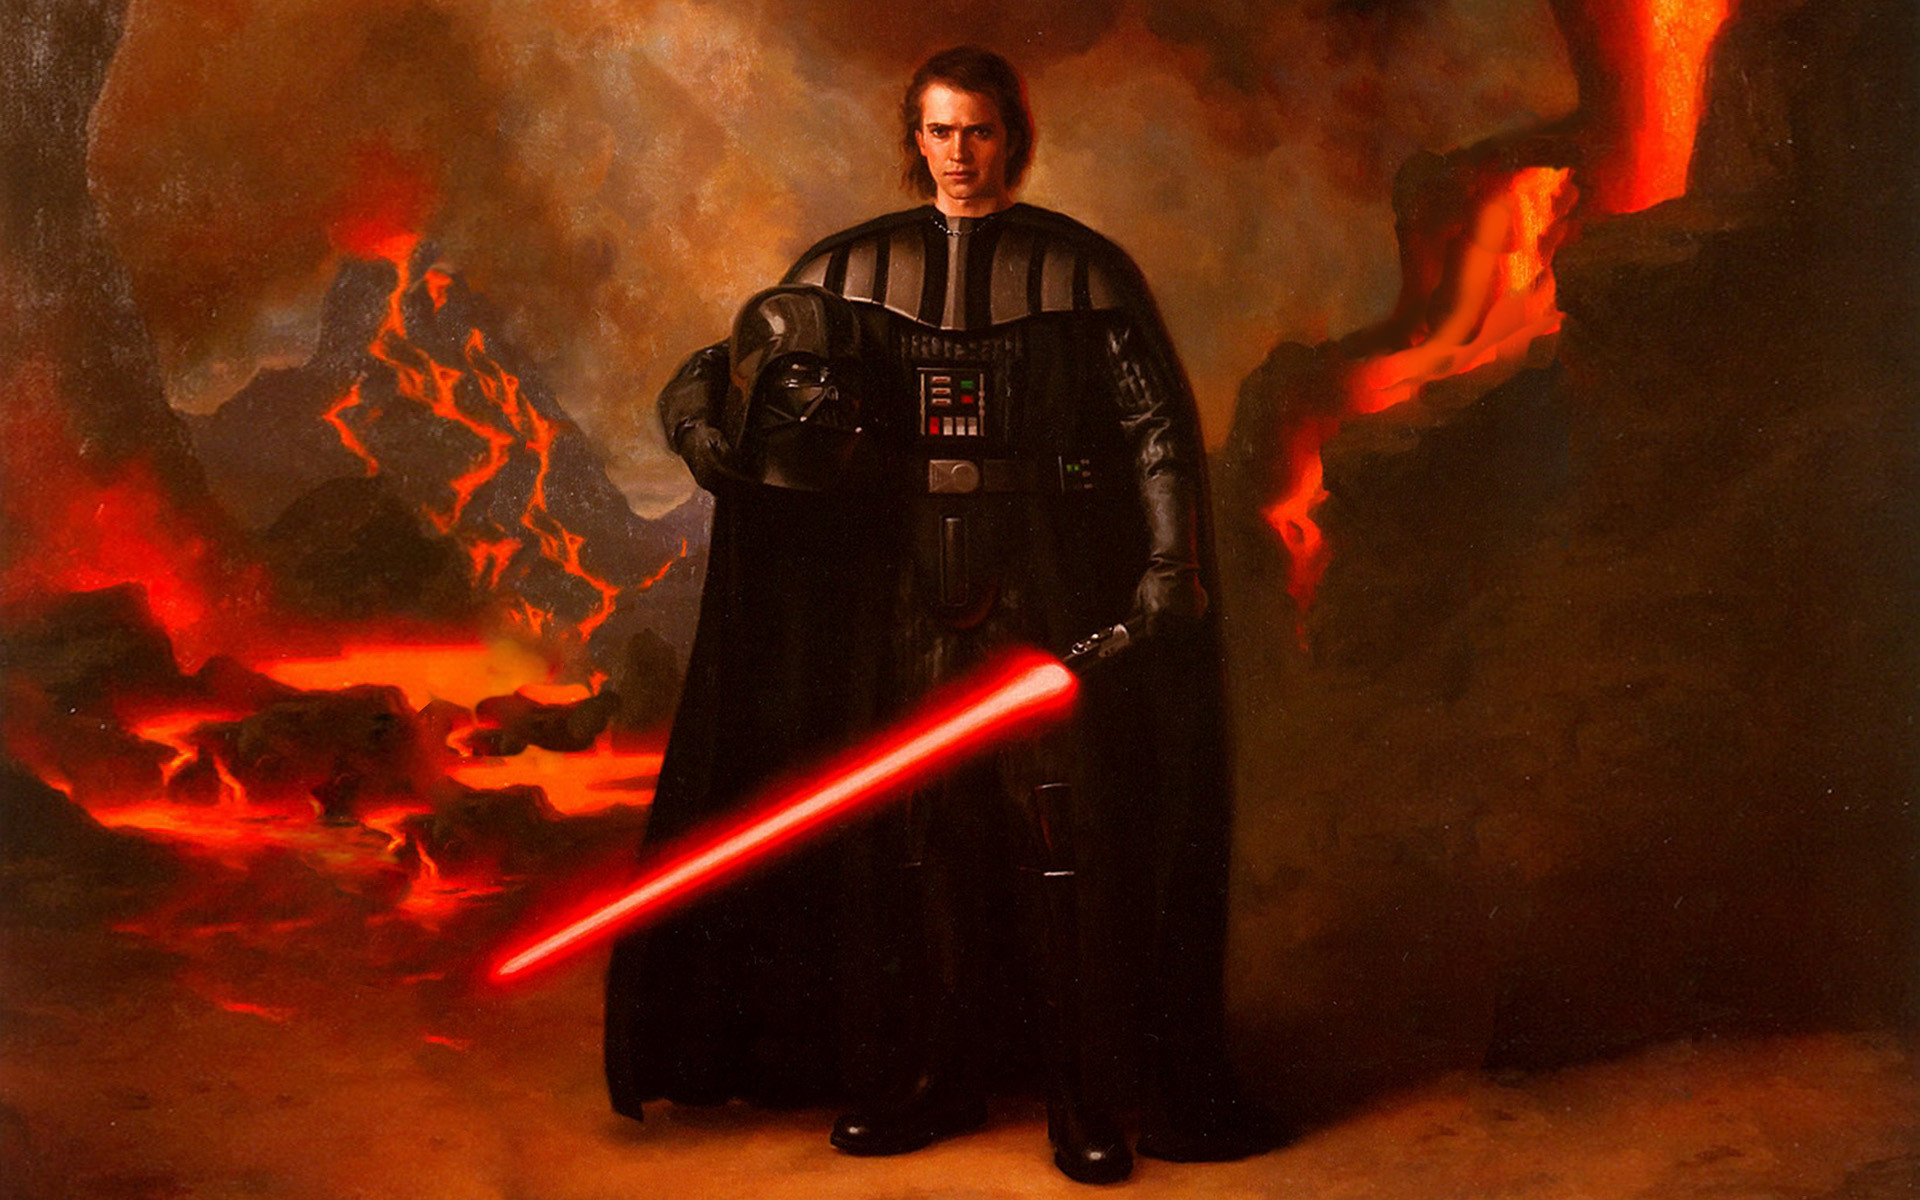 1920x1200 wallpaper Star Wars · Darth Vader · Sith · Anakin Skywalker